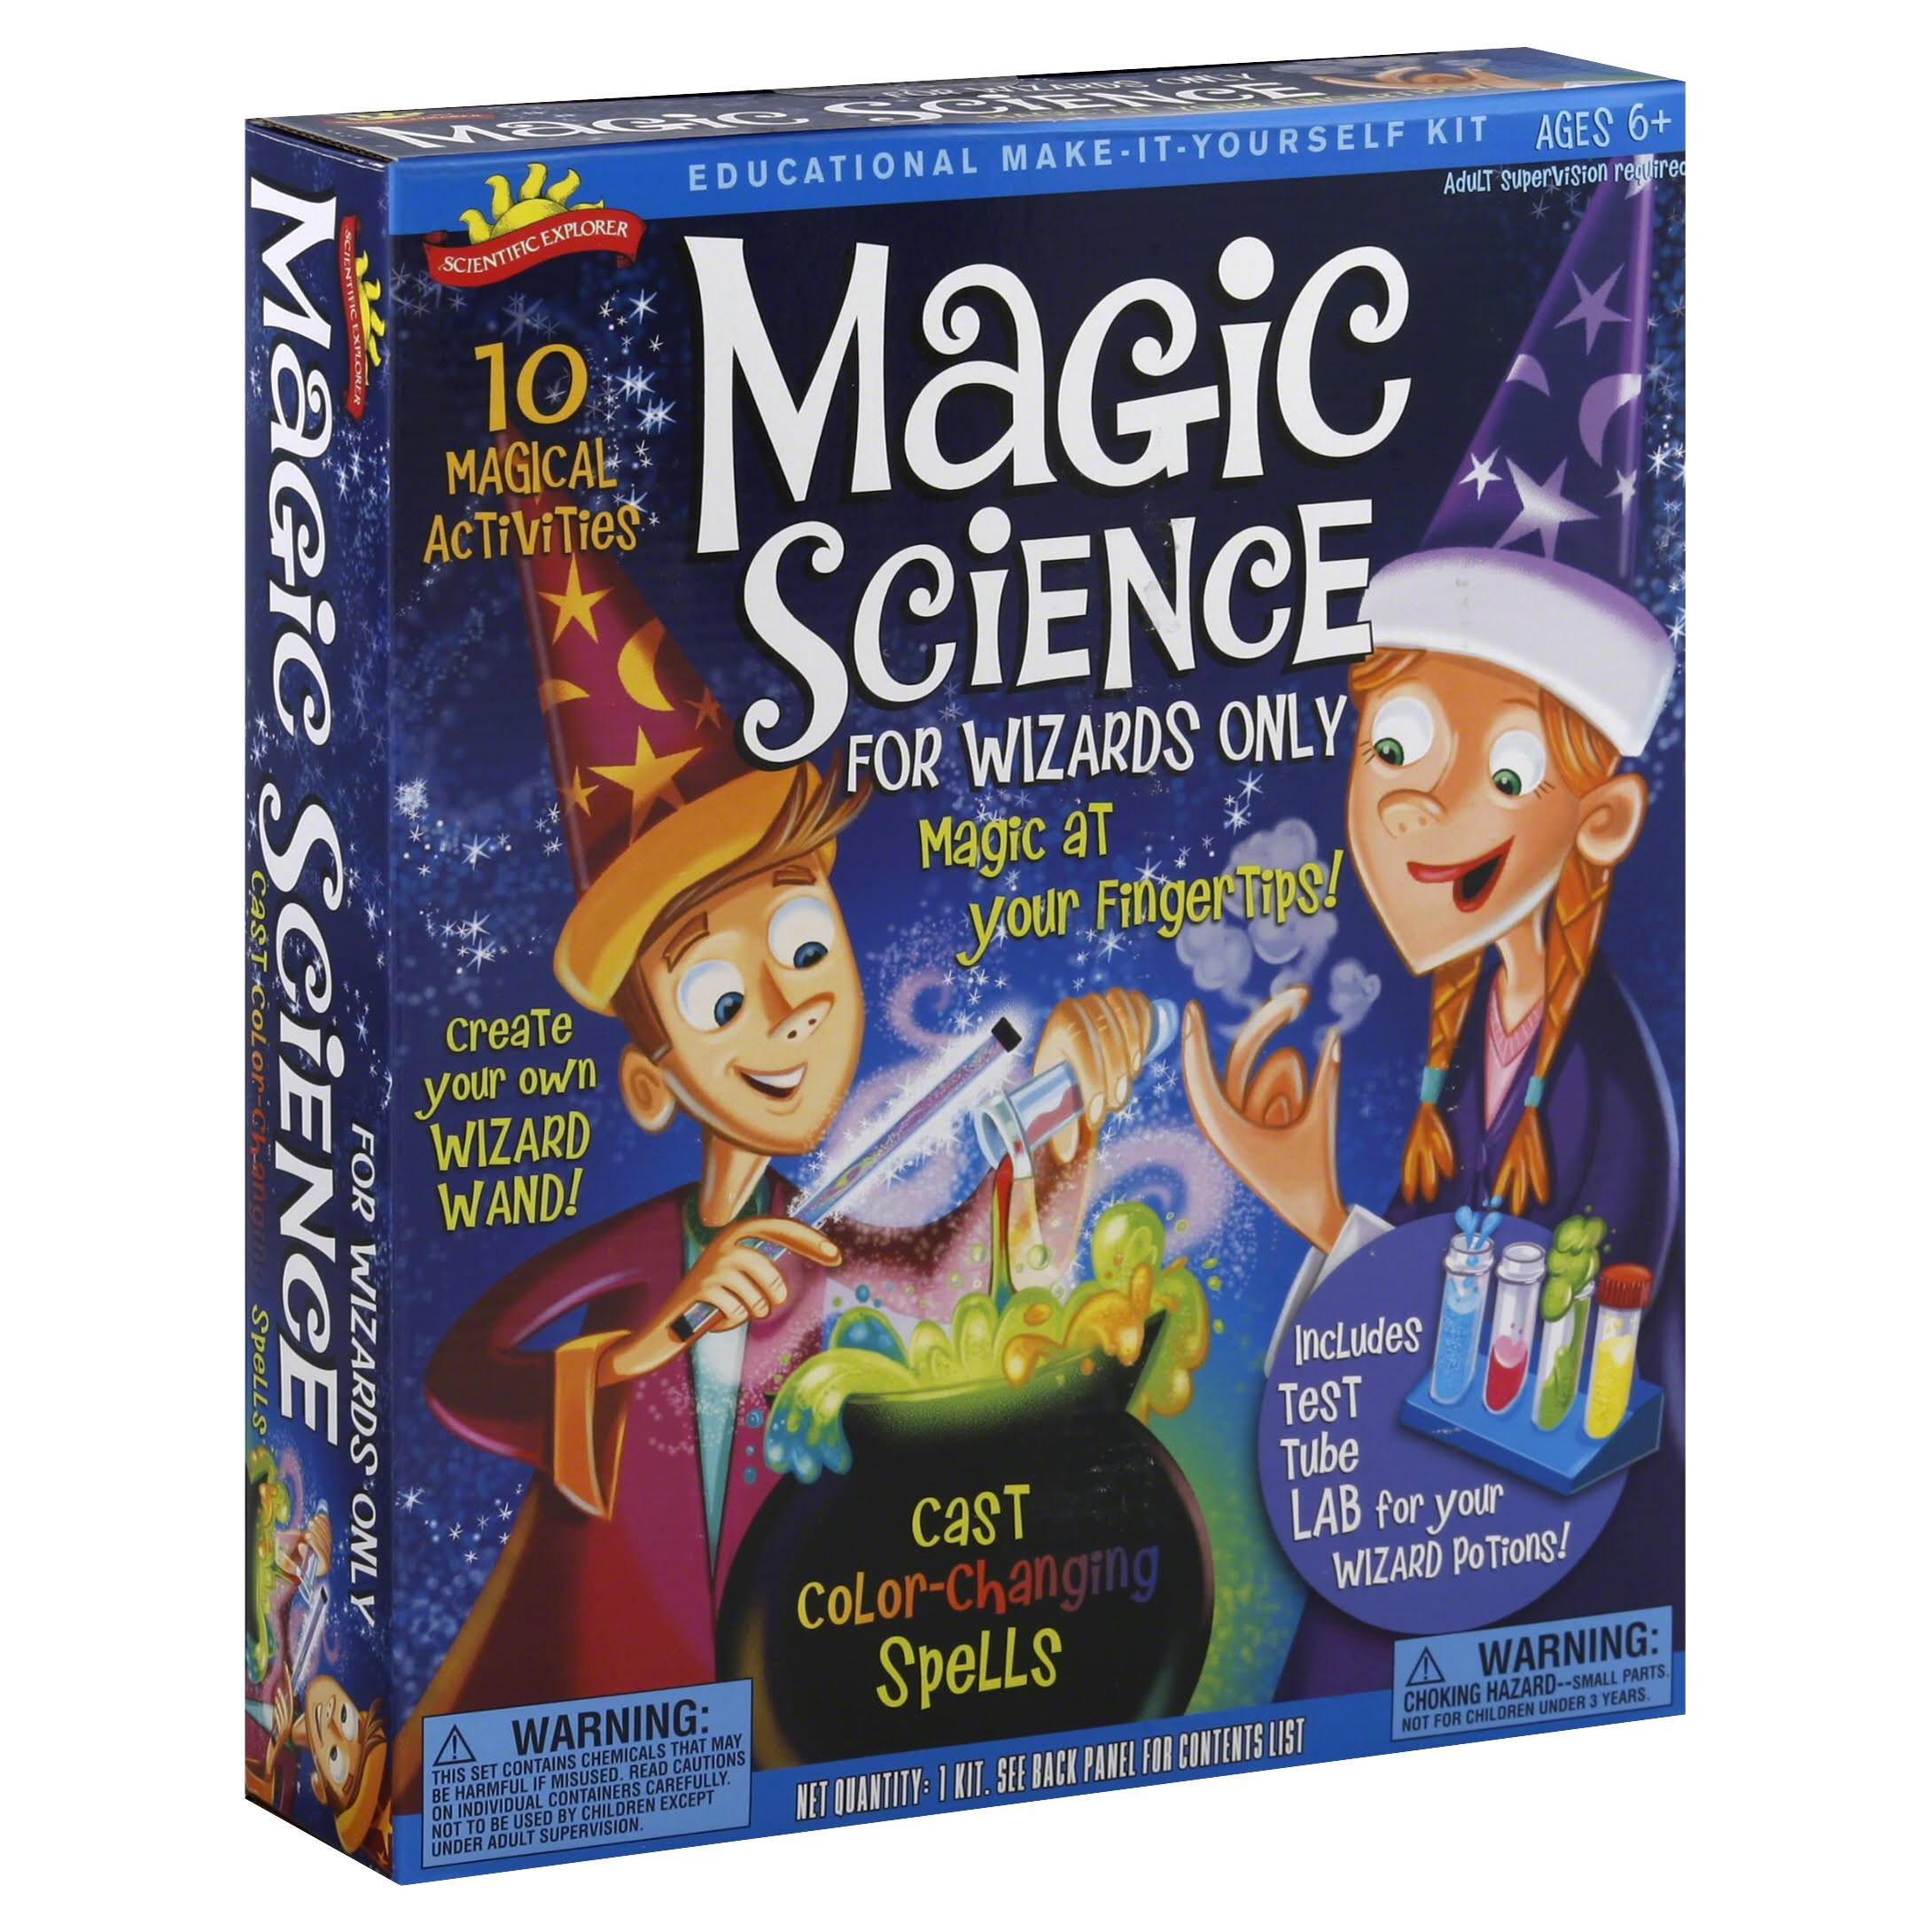 Scientific Explorer Magic Science For Wizards Only Kit - 7 Activities